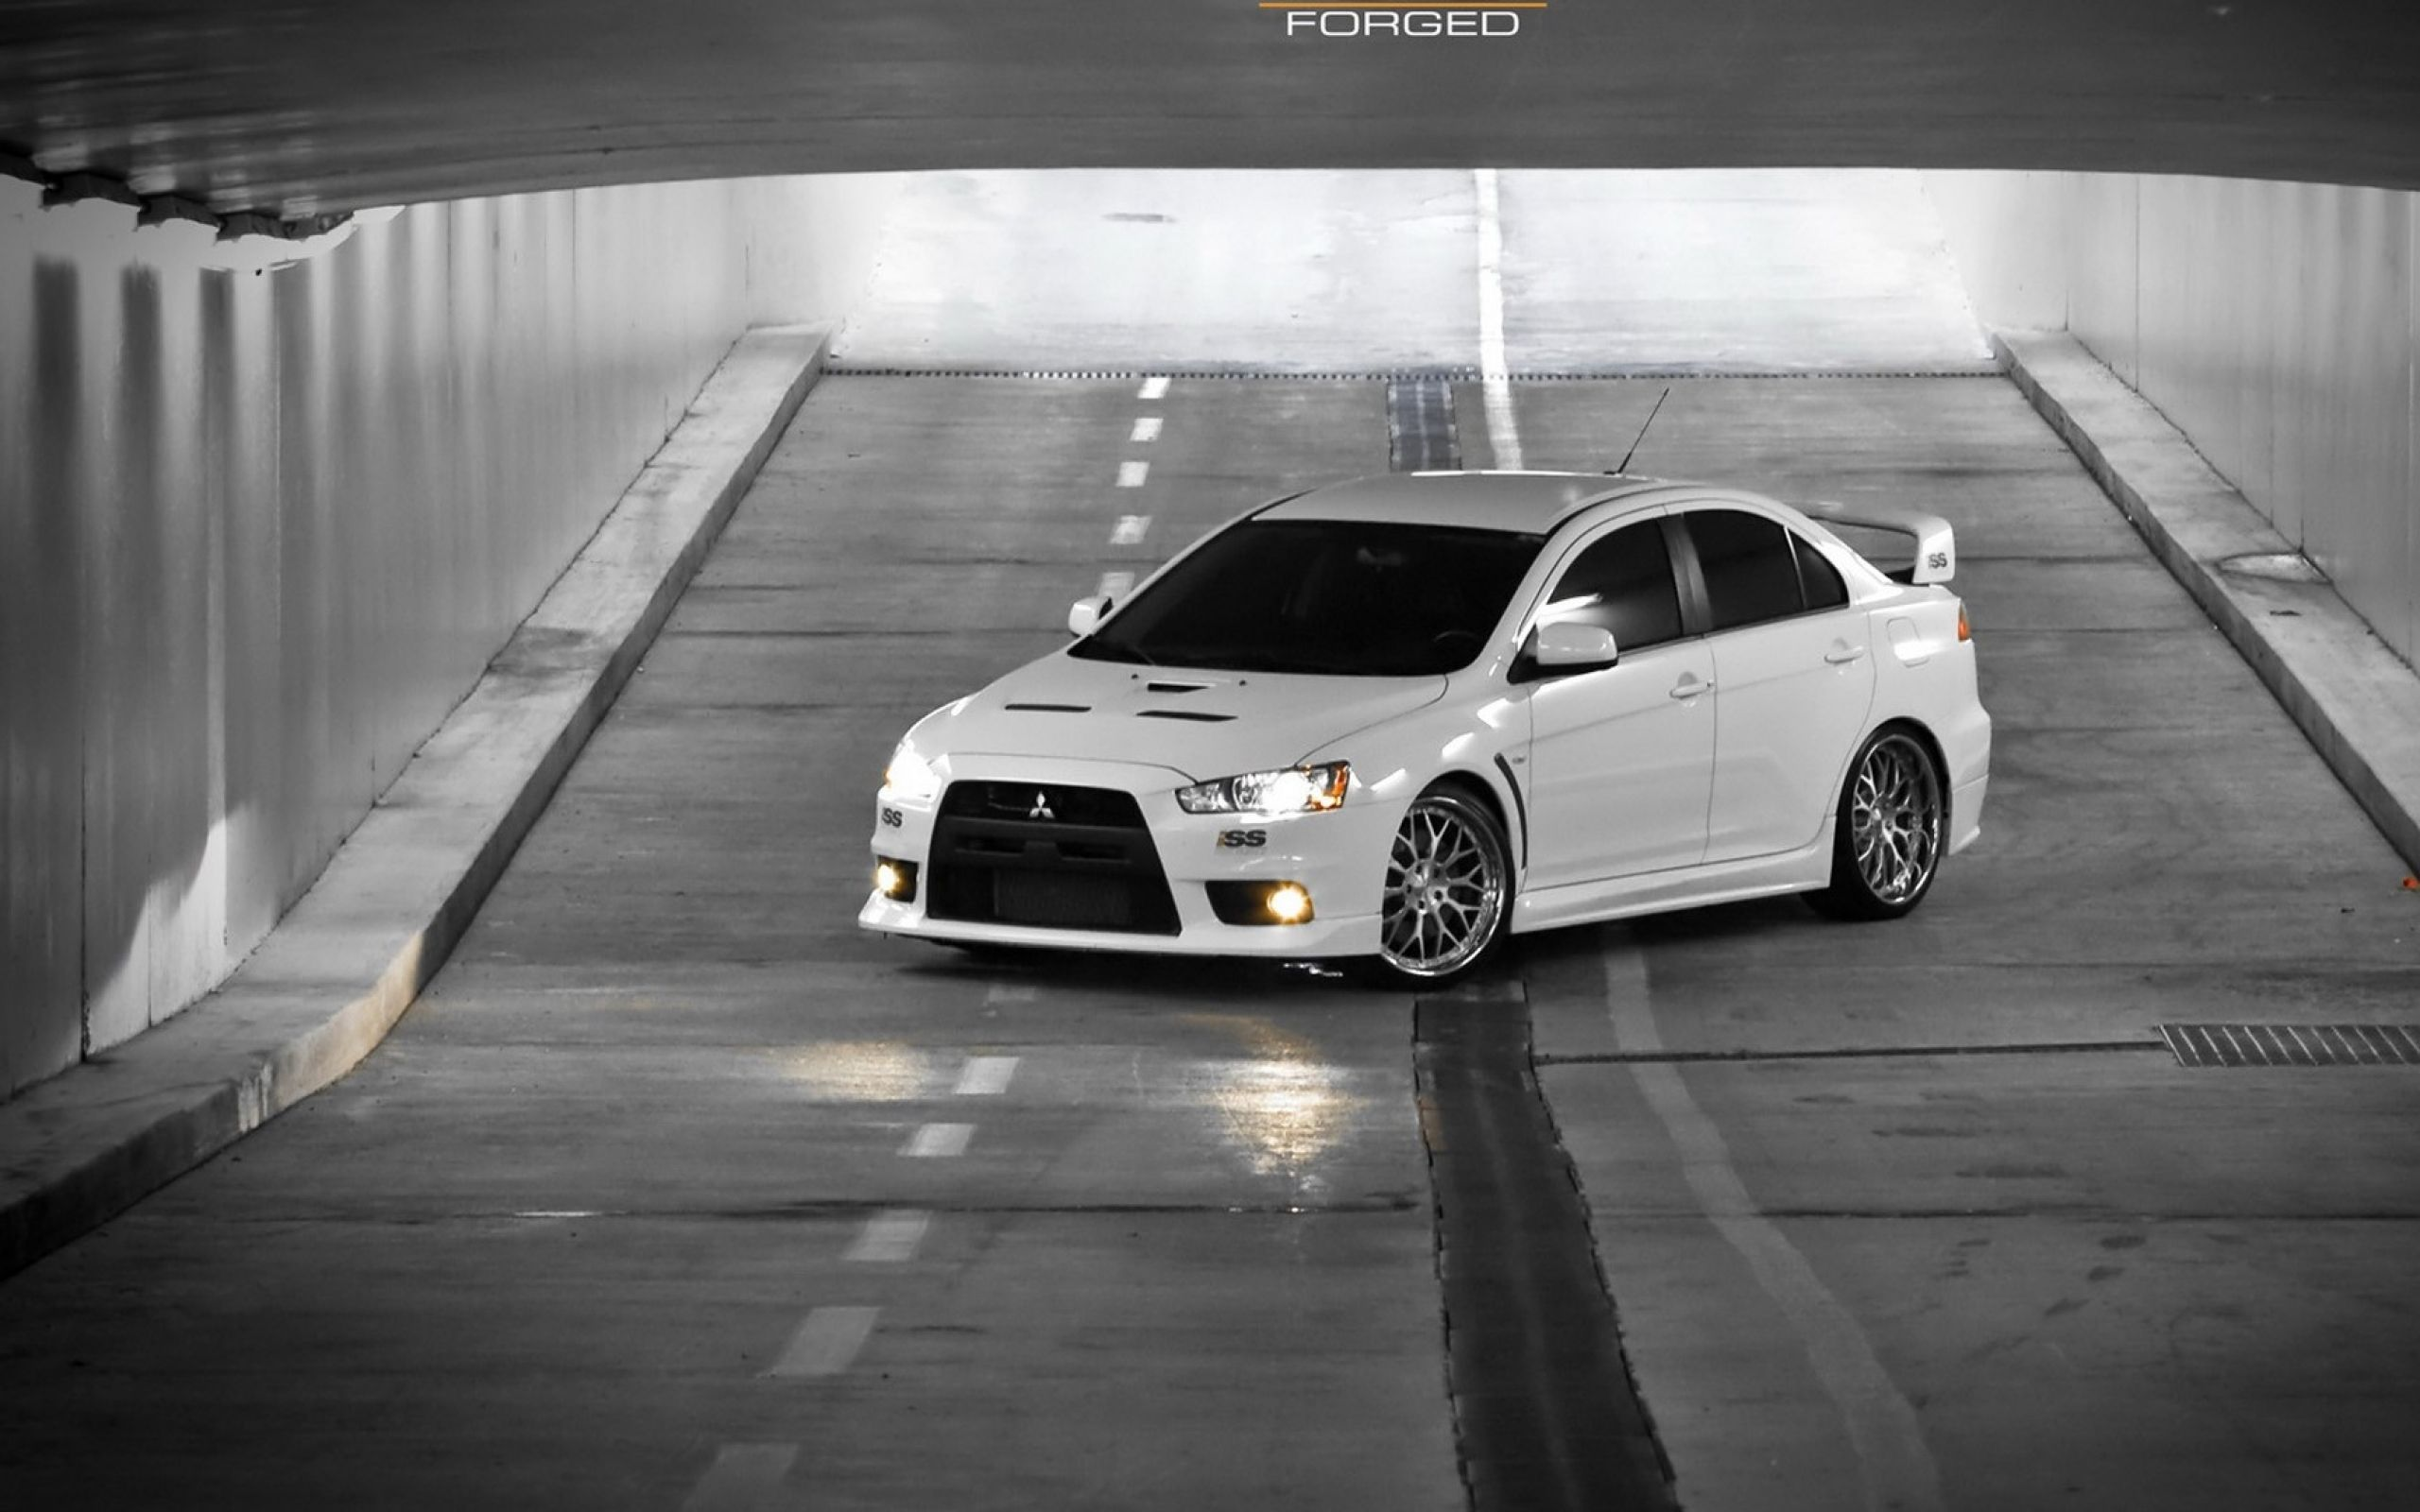 mitsubishi lancer evo tuning wallpaper mitsubishi evo. Black Bedroom Furniture Sets. Home Design Ideas